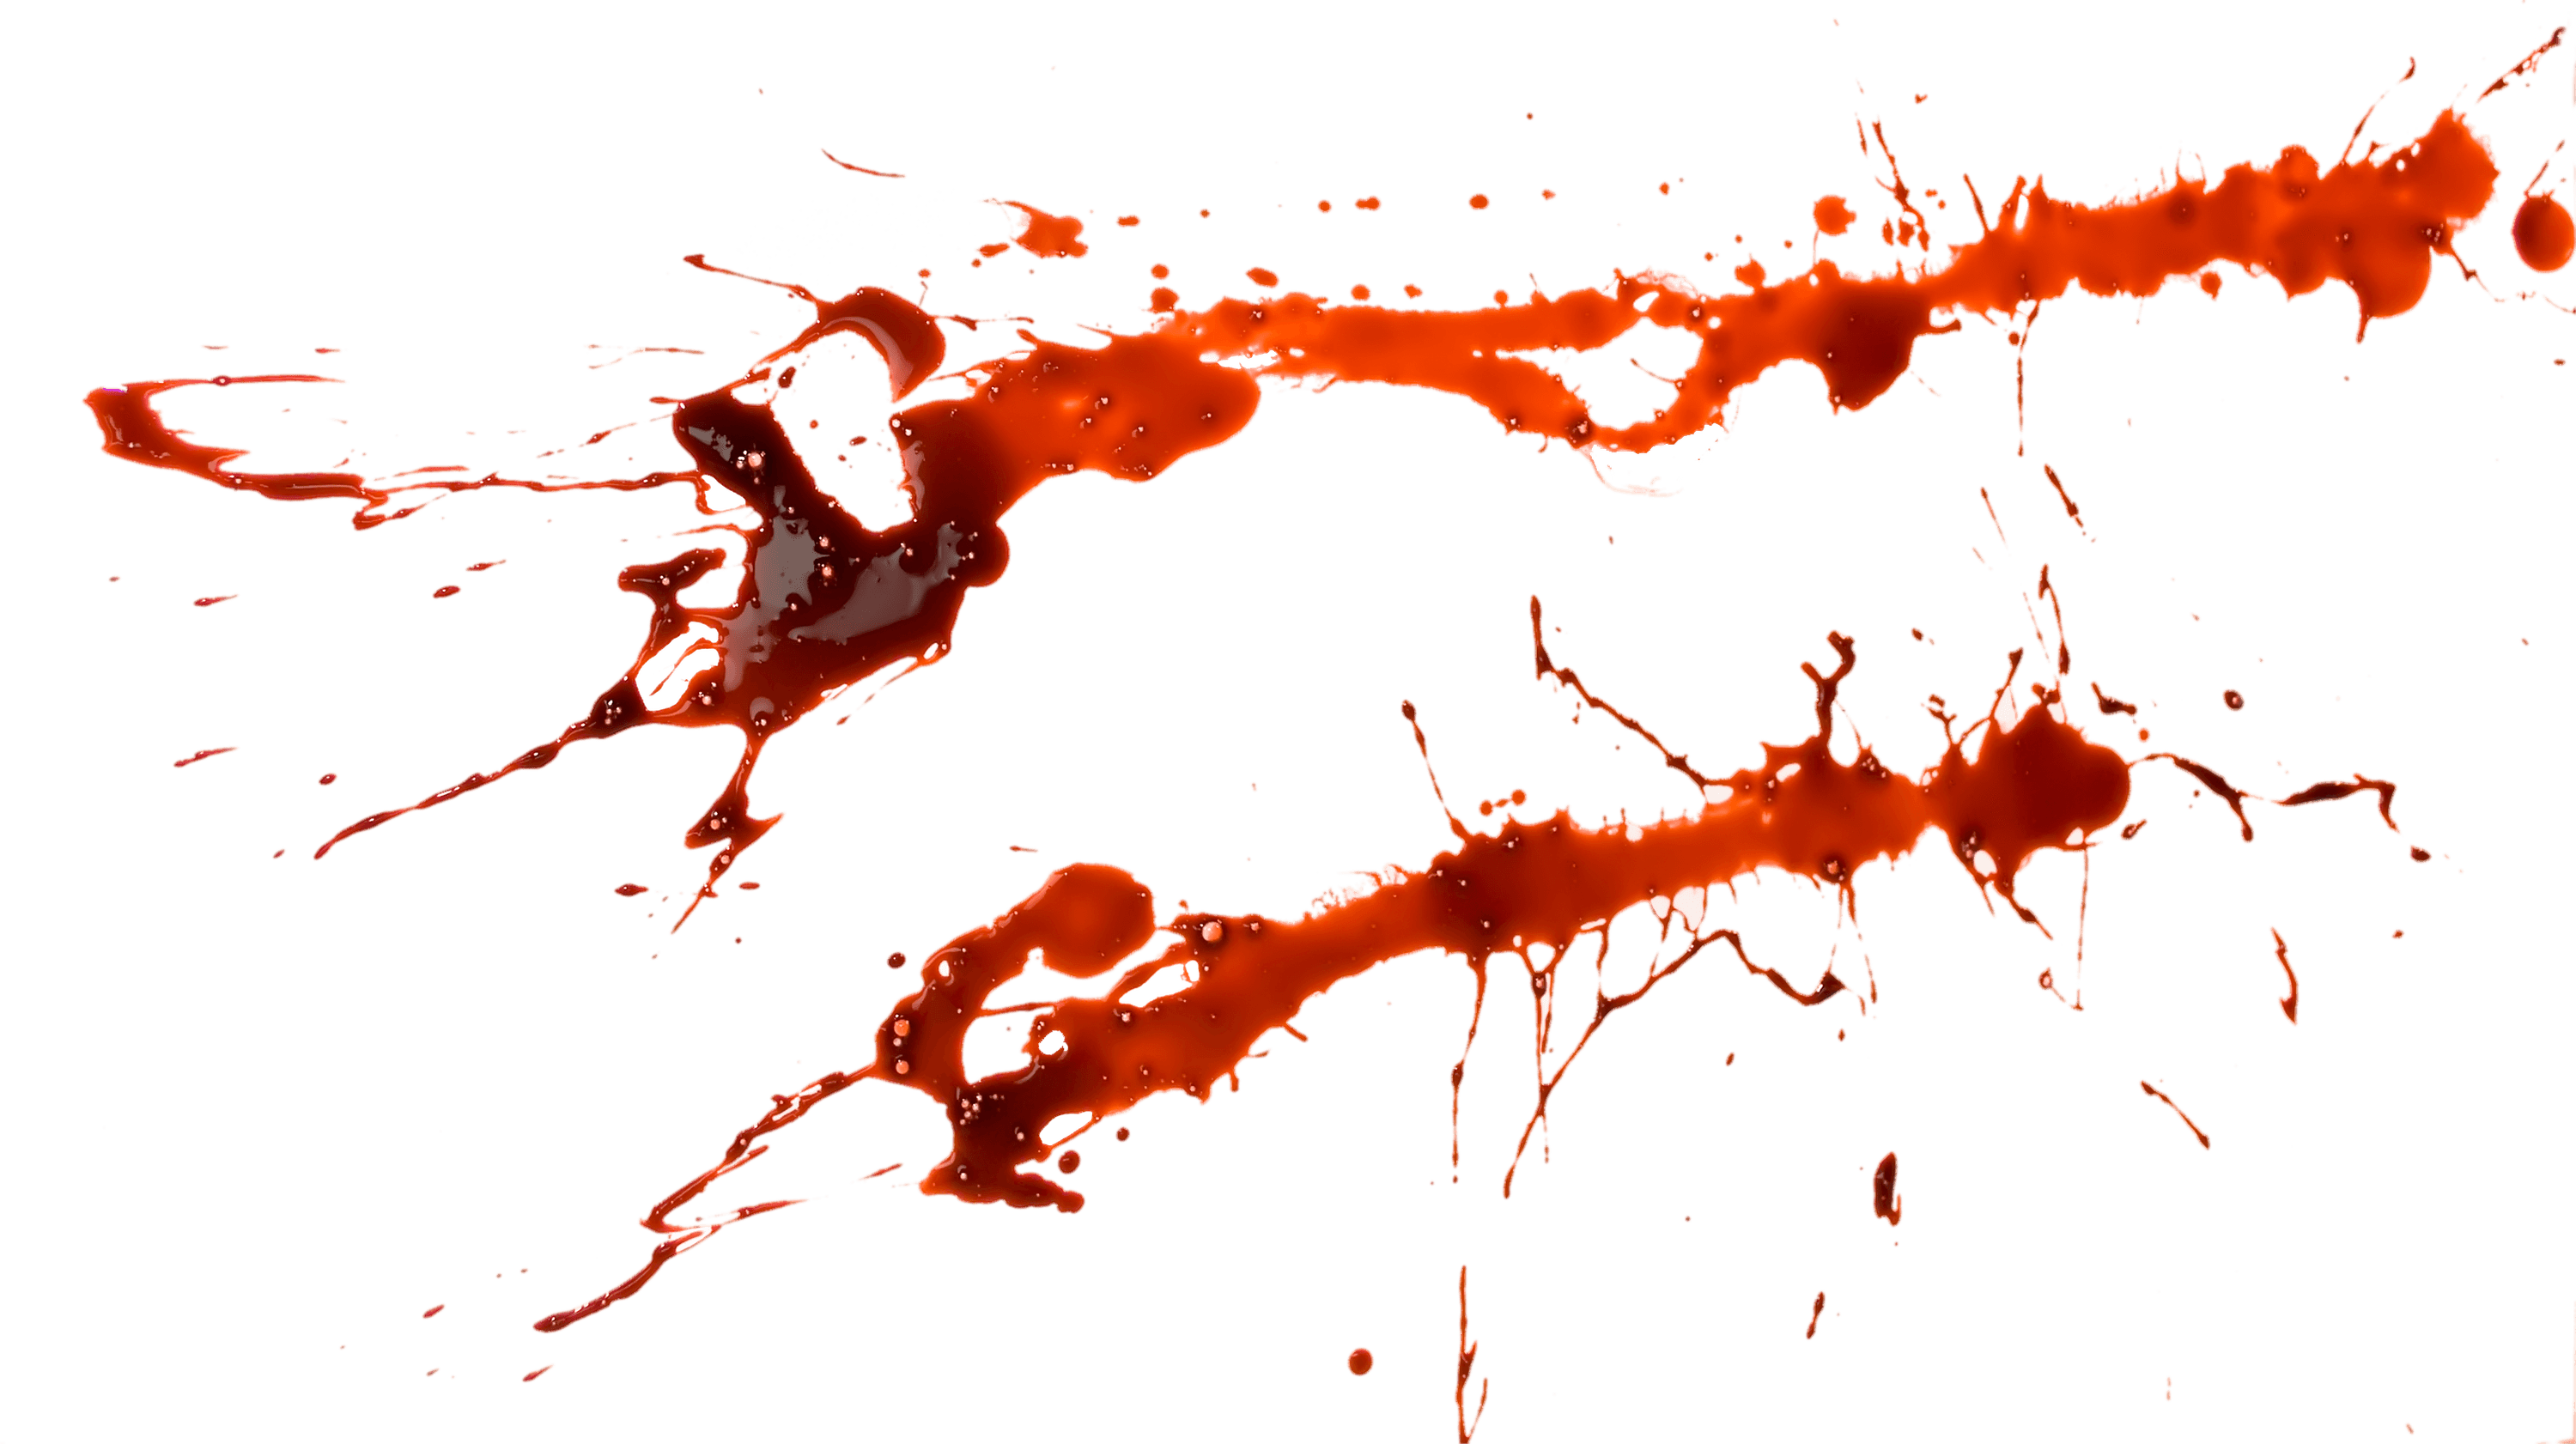 transparent stain png